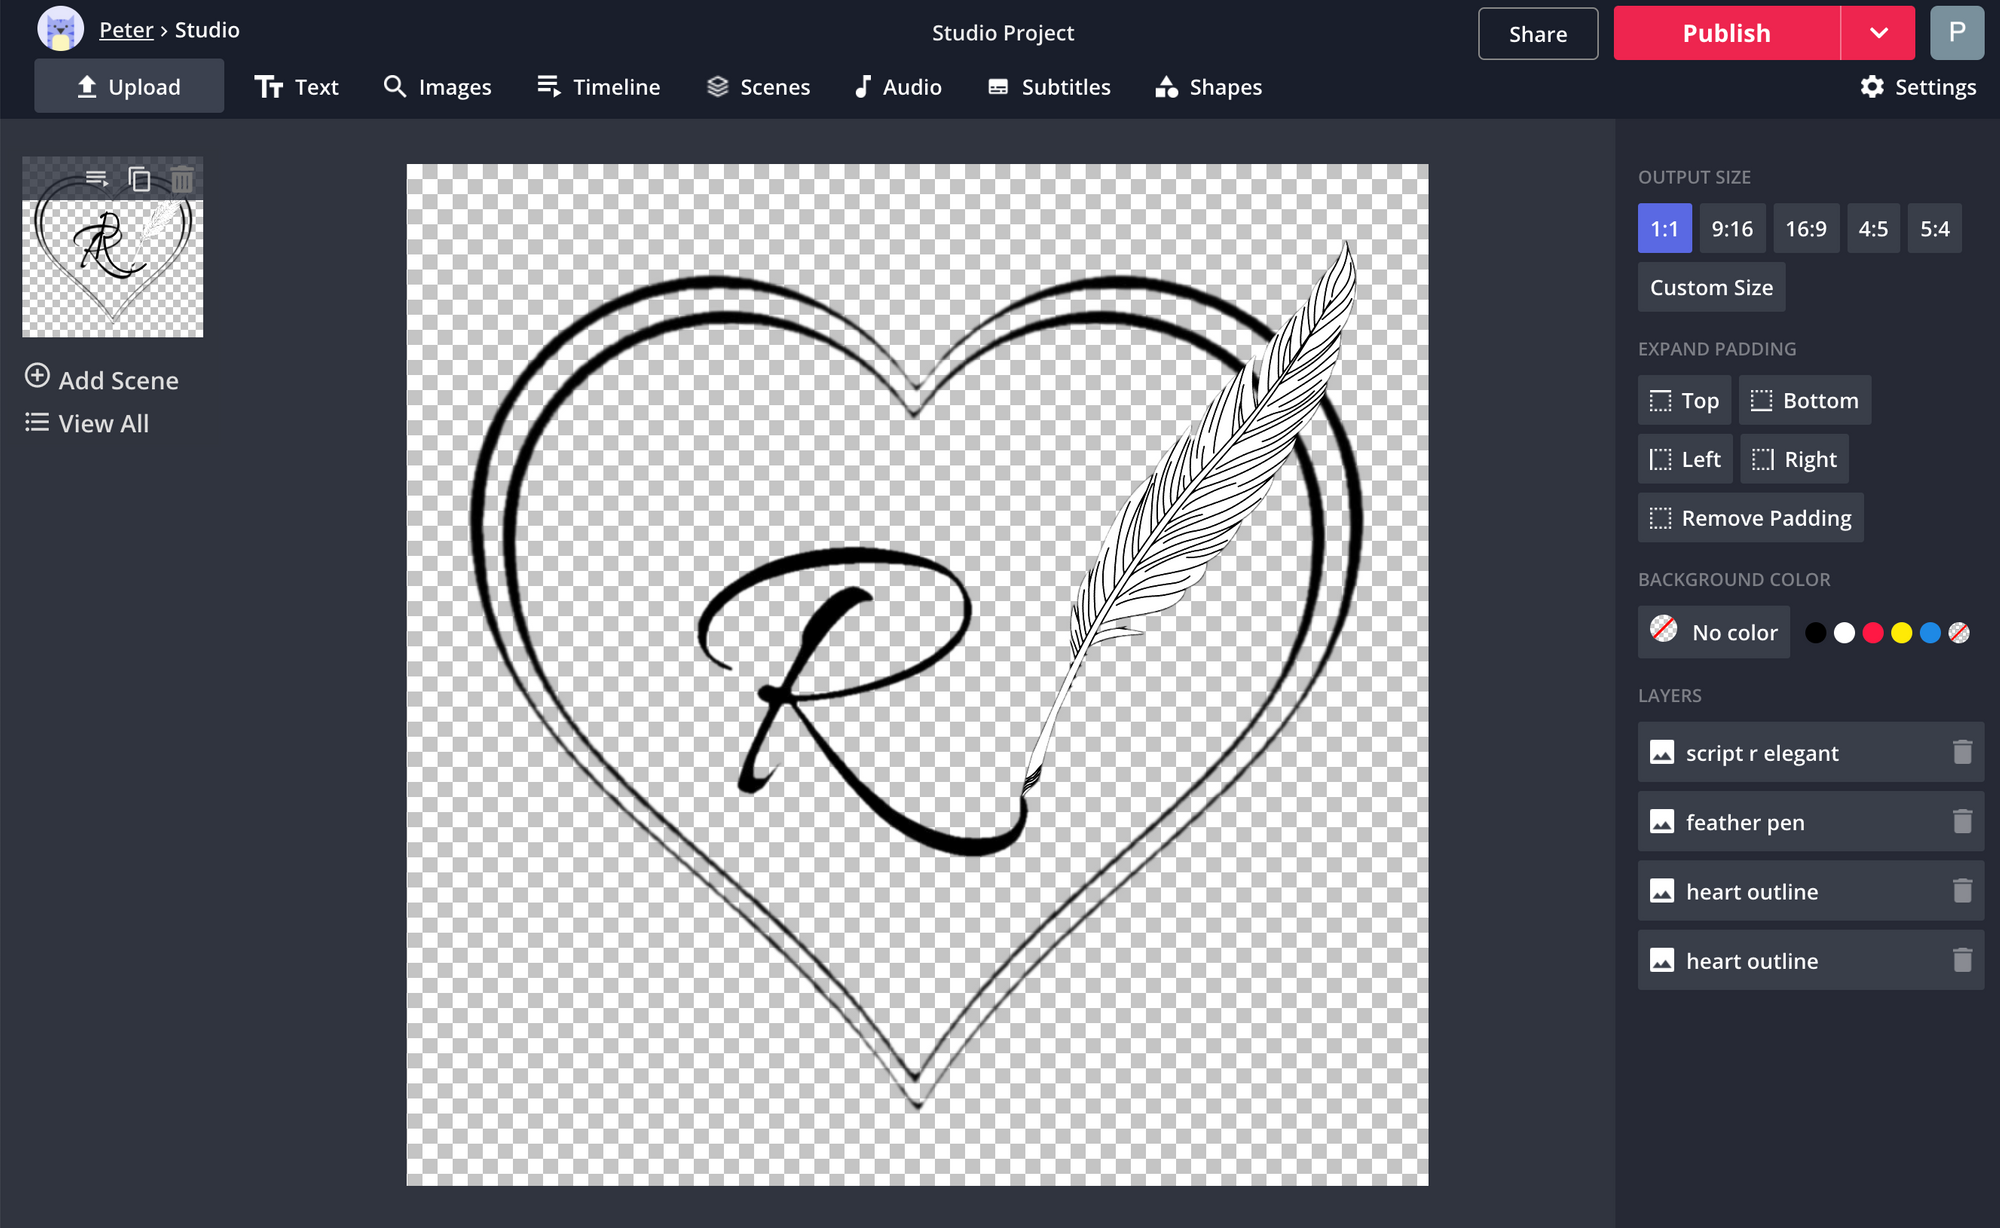 A screenshot of a tattoo being designed in the Kapwing Studio.